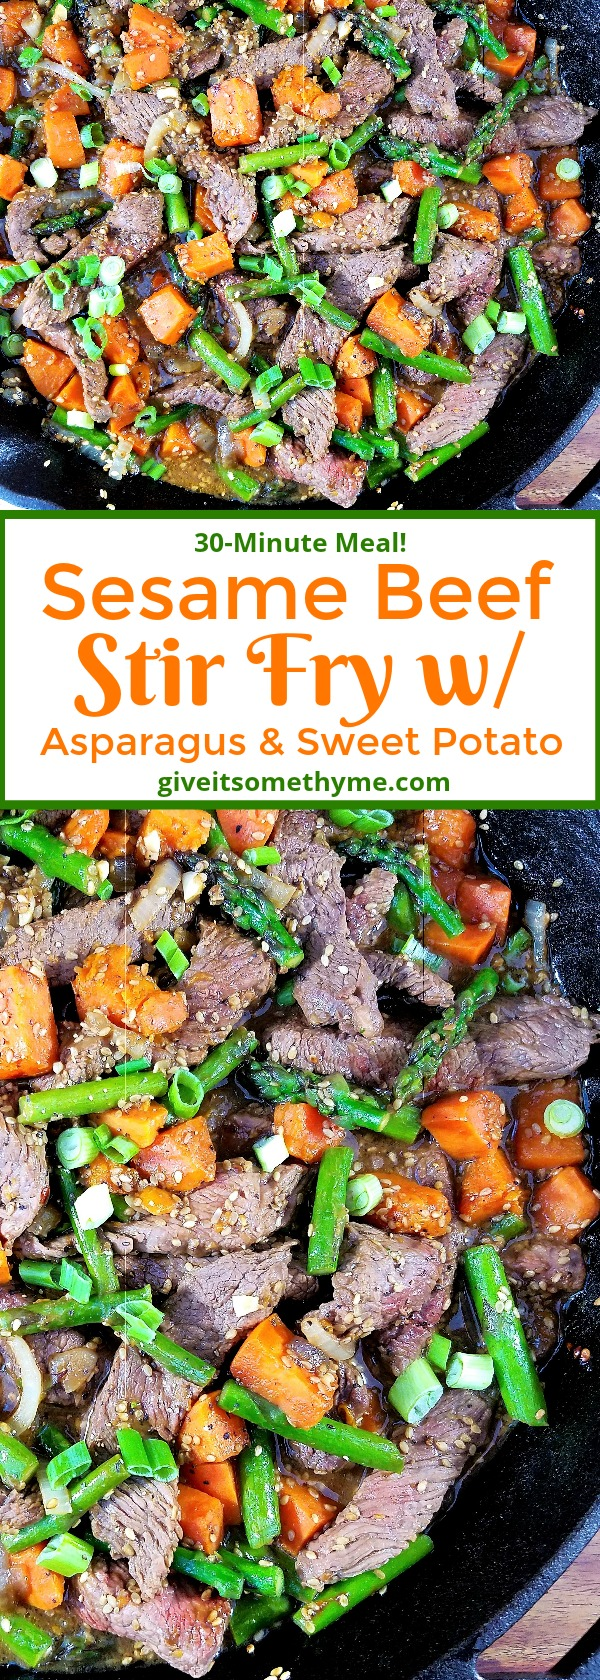 Sesame Beef Stir Fry w Asparagus & Sweet Potato | Give it Some Thyme